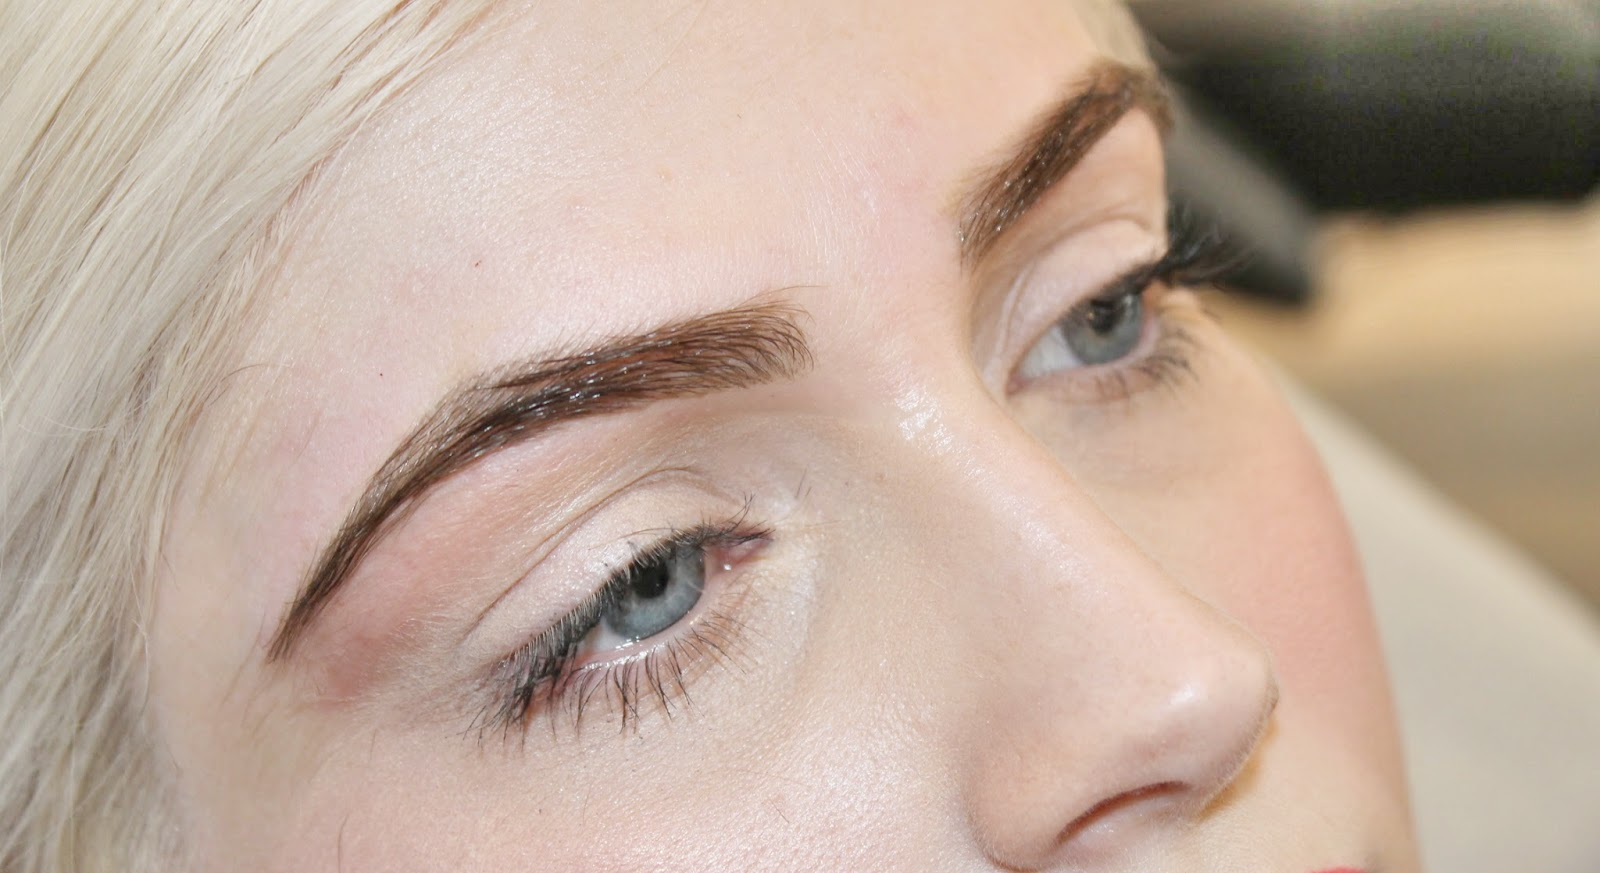 HD Brows, iBrows etc, eyebrows, brow tinting, brow waxing, eyebrow threading, blonde